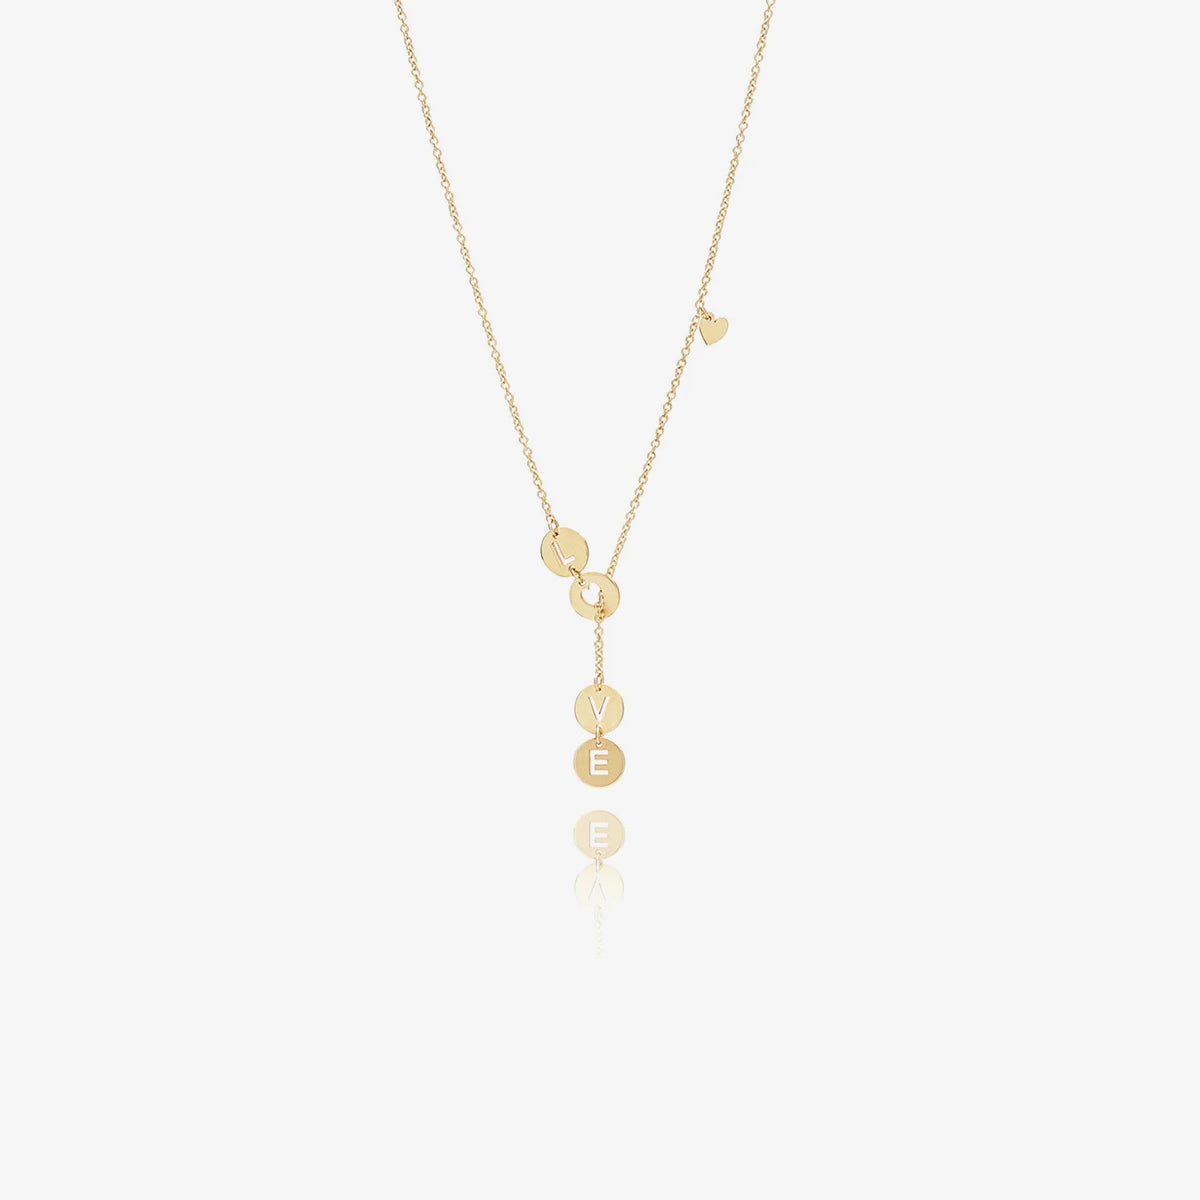 14K Solid Gold Lariat-Style Necklace - estellacollection